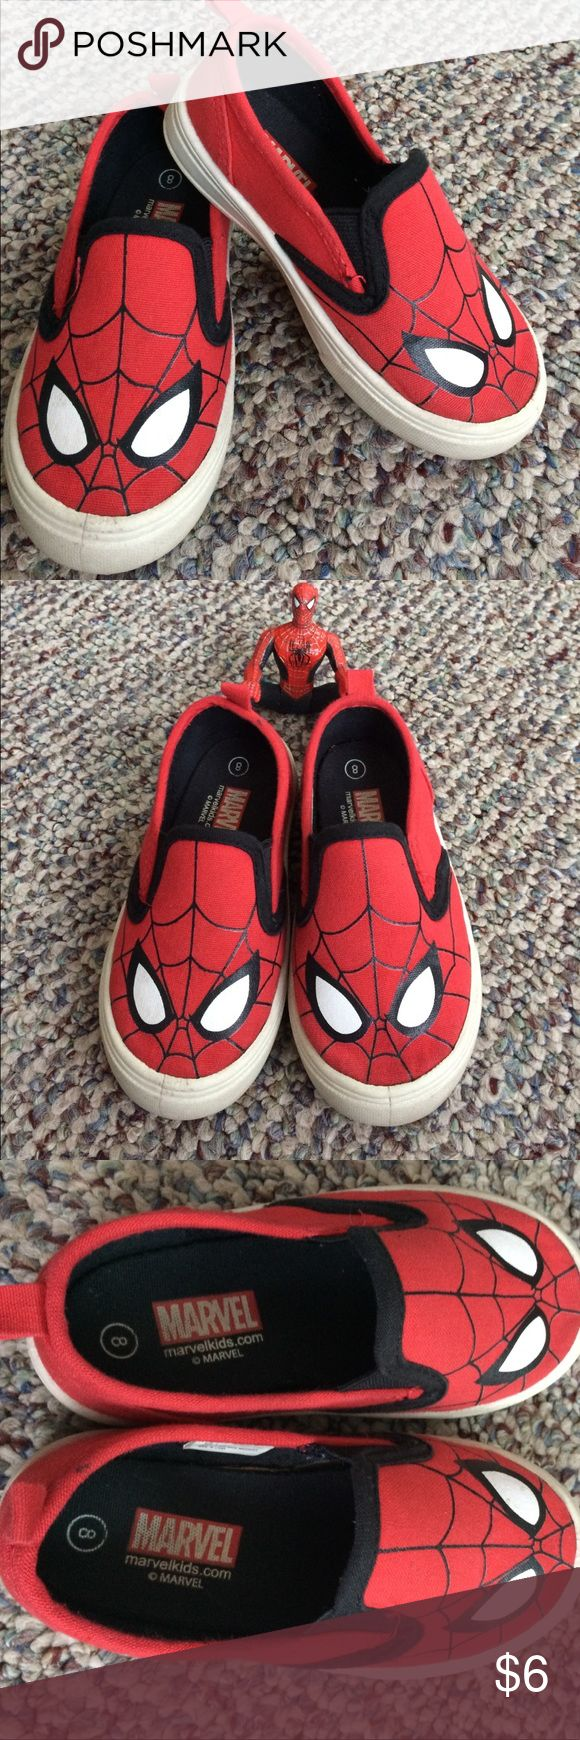 Spider-Man toddler size 8 slip on shoes Like new! Toddler boys size 8 slip on Spider-Man shoes Marvel Shoes